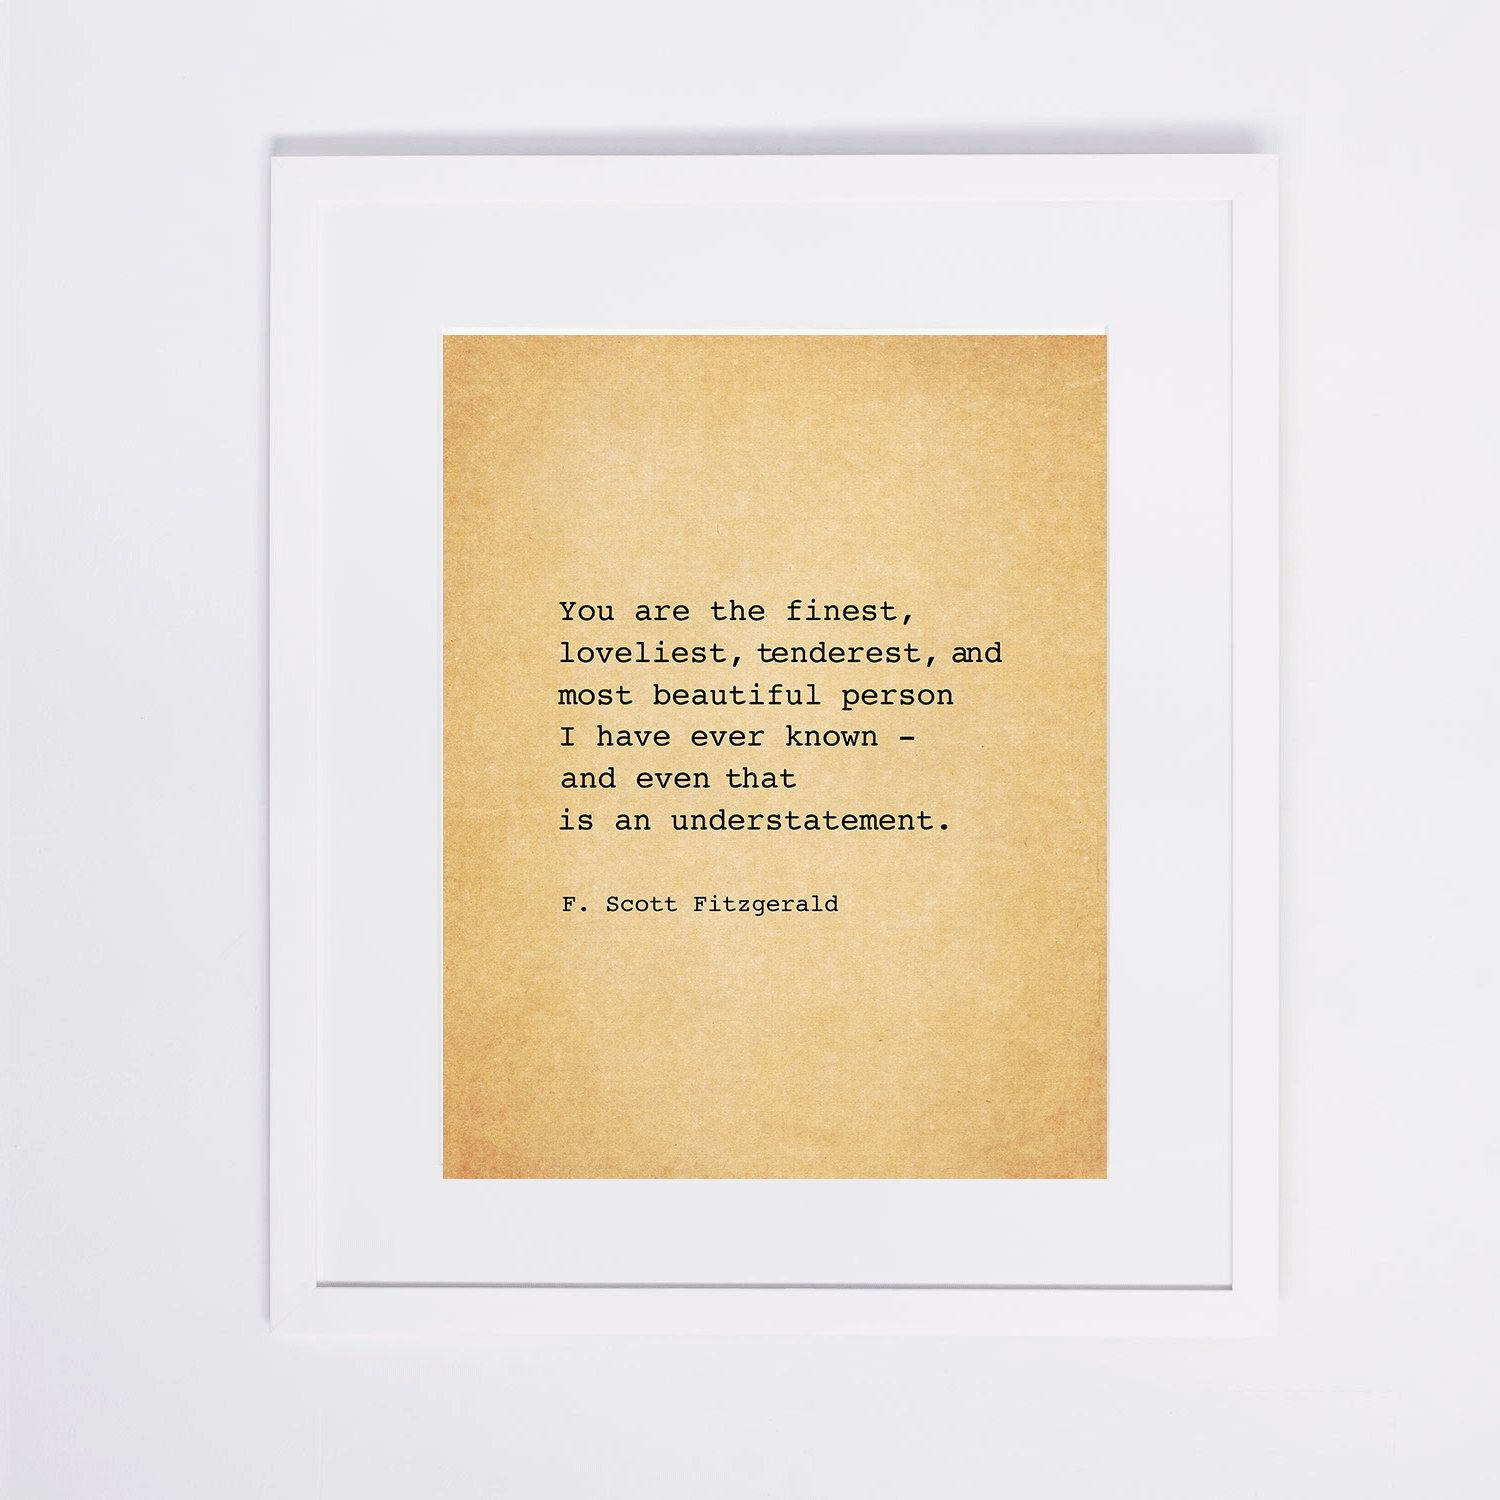 F. Scott Fitzgerald Love Quote   4x7, 8x10, 11x14   Home Decor